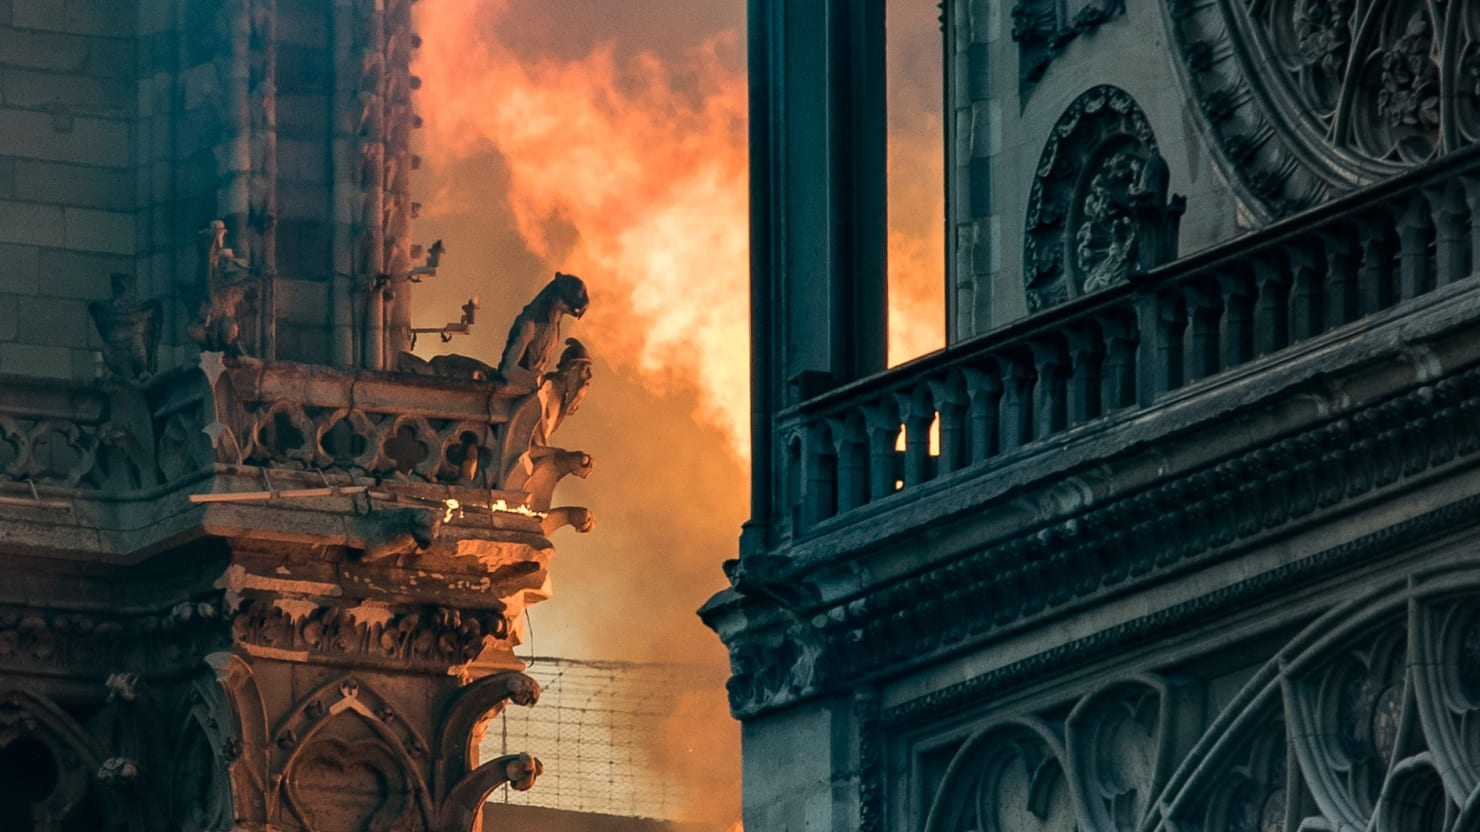 No Word on Fate of Notre Dame's 18,000 Bees